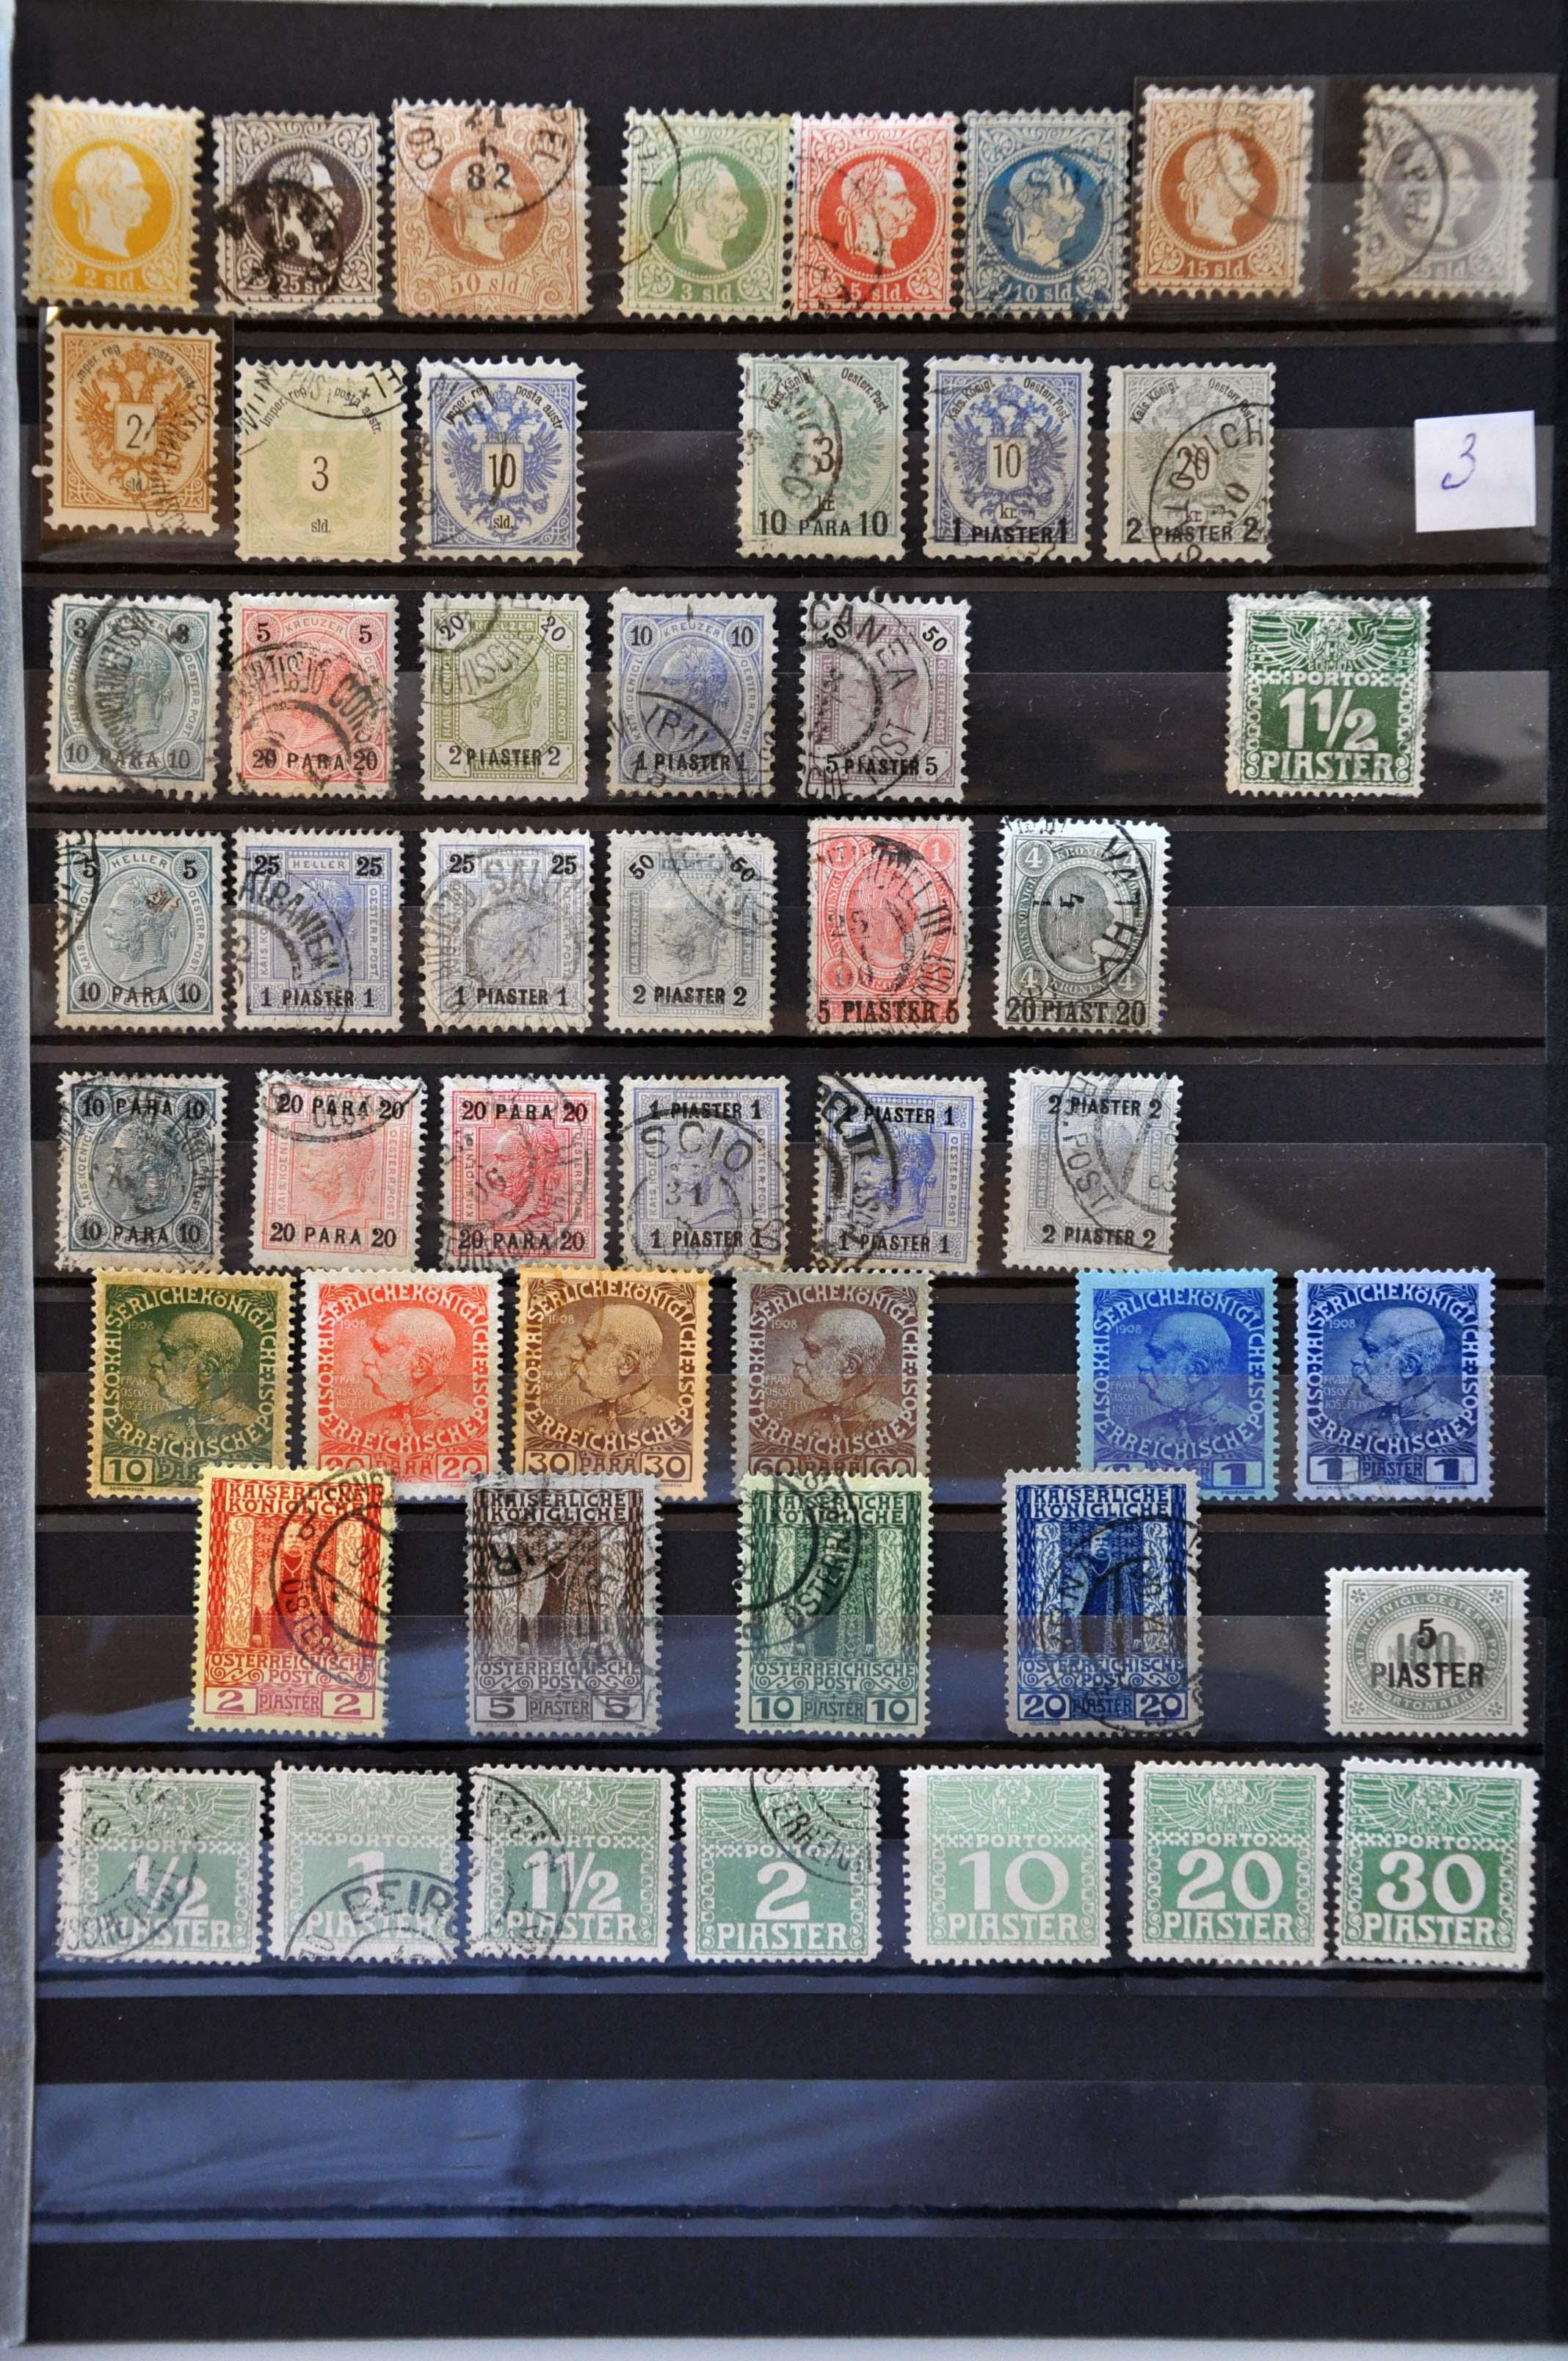 Lot 581 - Austria and former territories Austria -  Corinphila Veilingen Auction 245-246 Day 2 - Foreign countries - Collections and lots, Foreign countries - Boxes and literature